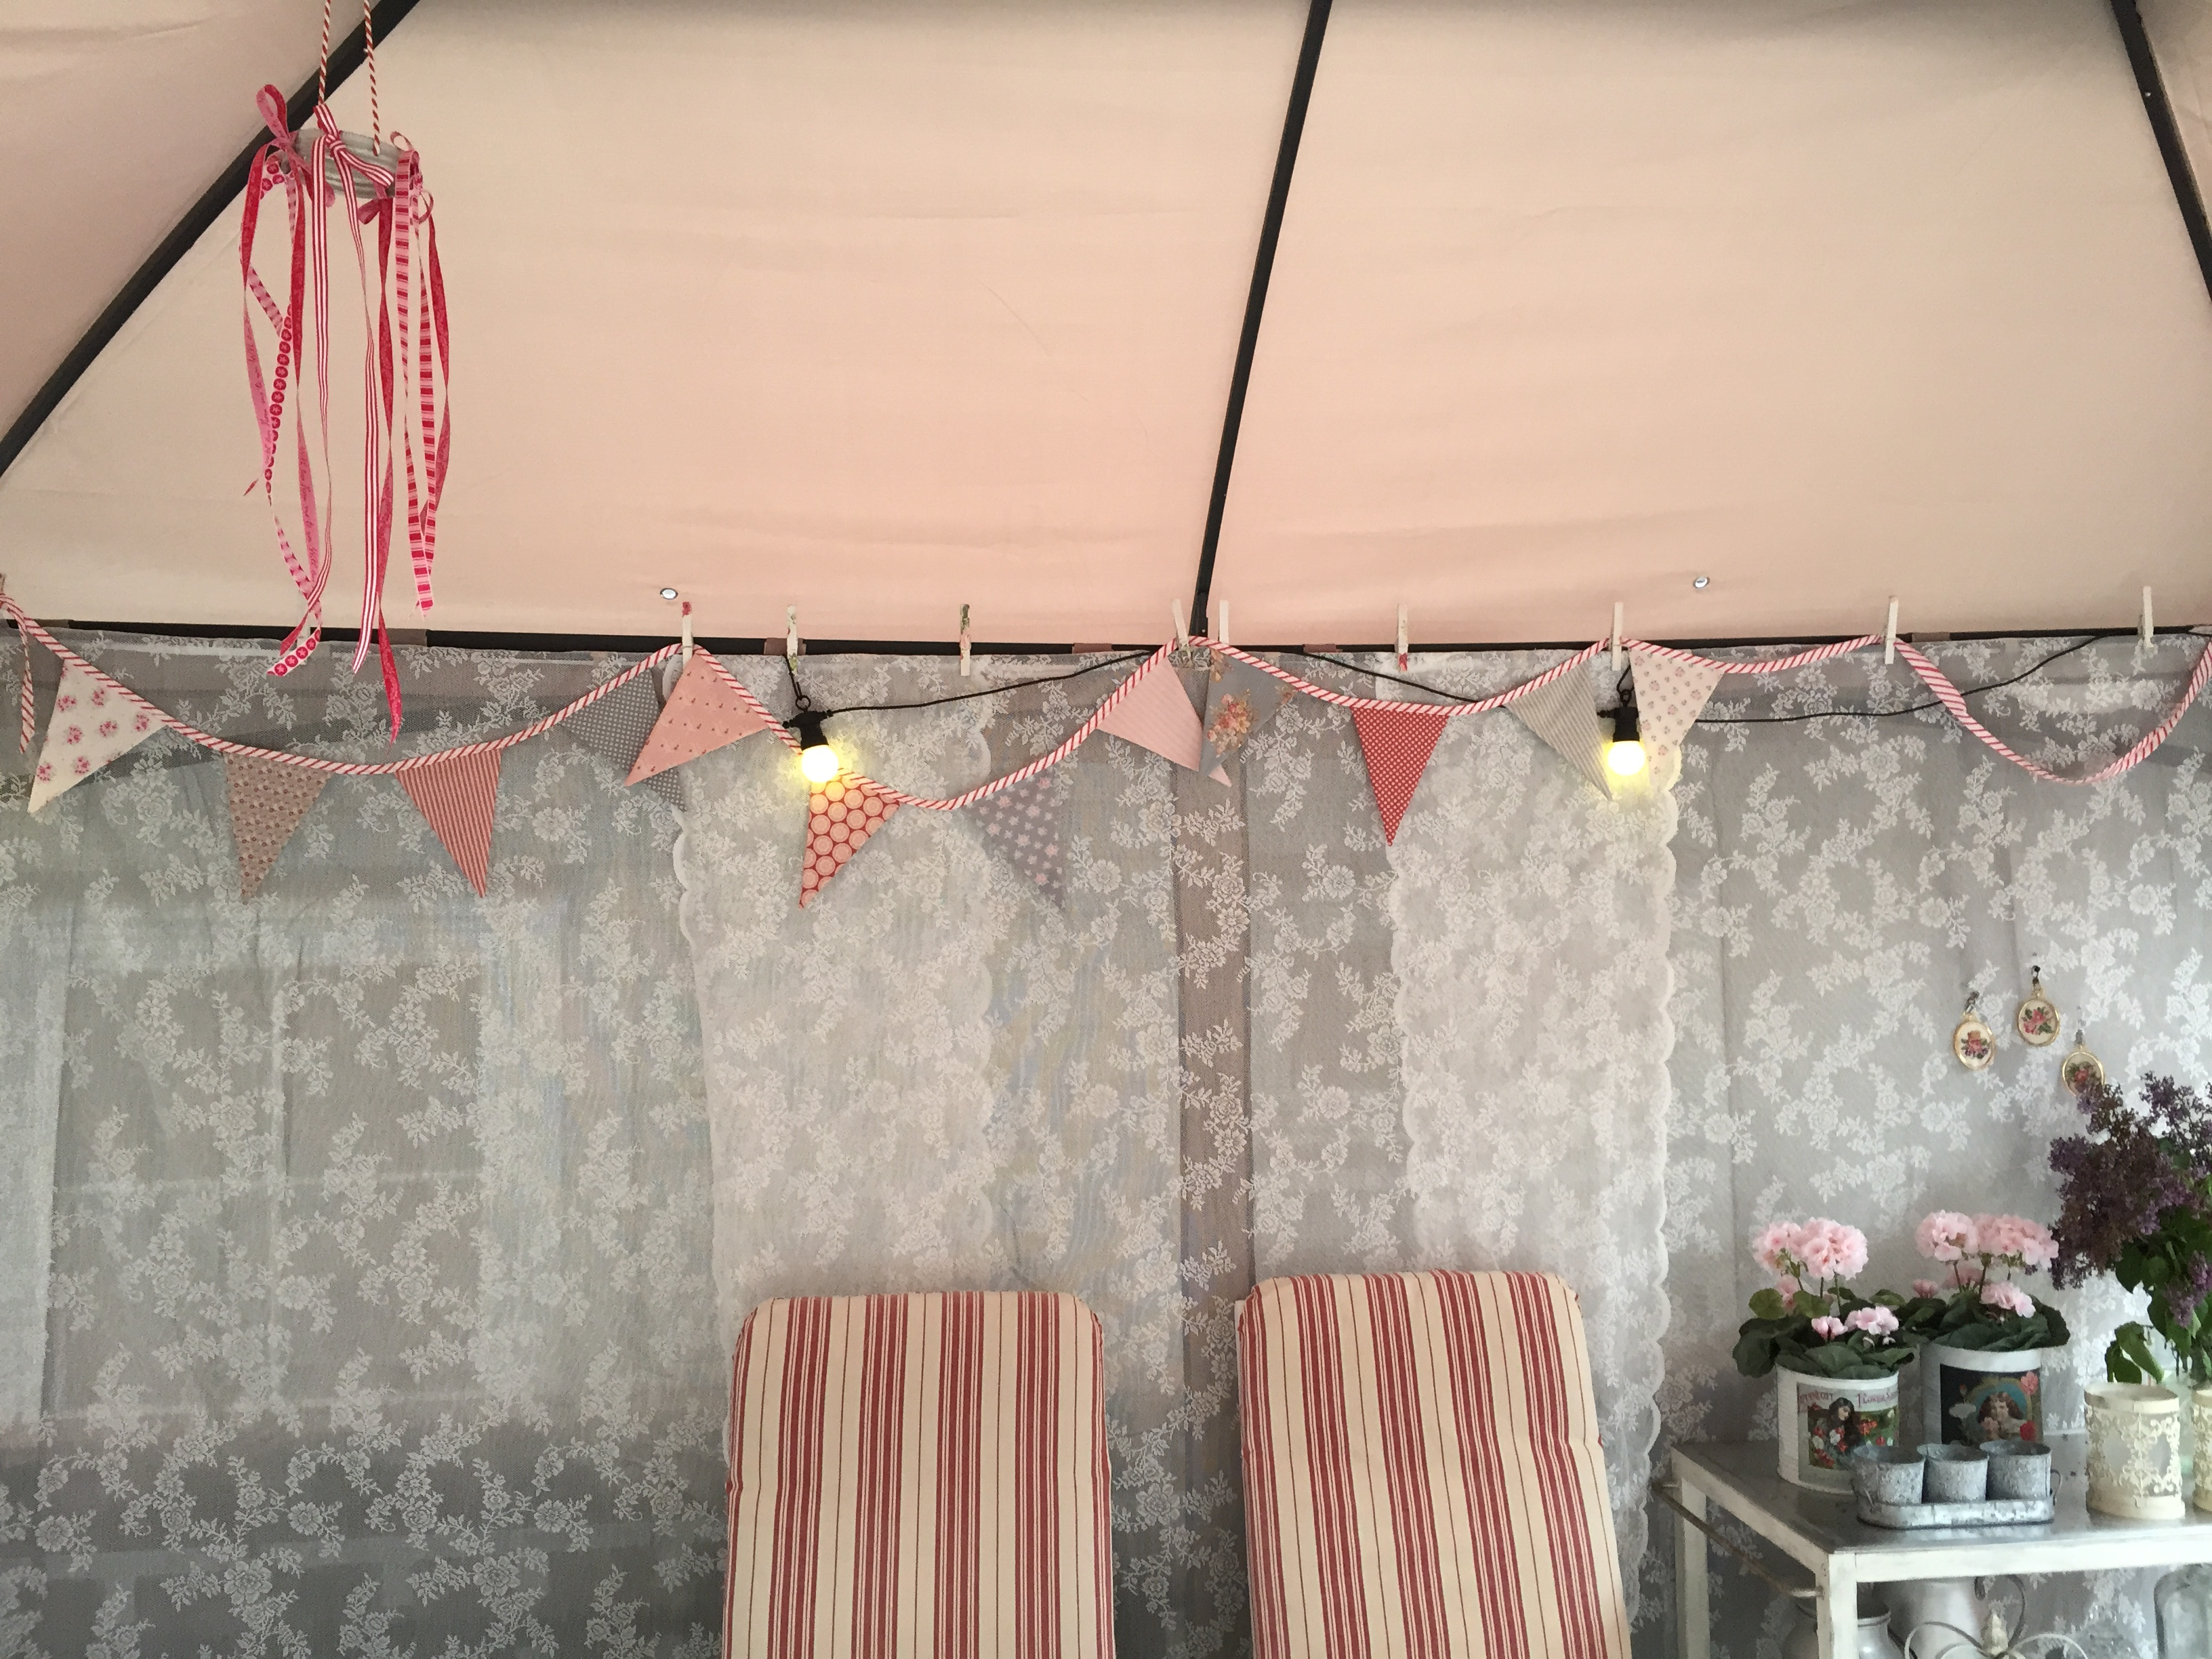 Diy glamping canopy part i wings of whimsy for Glamping ideas diy